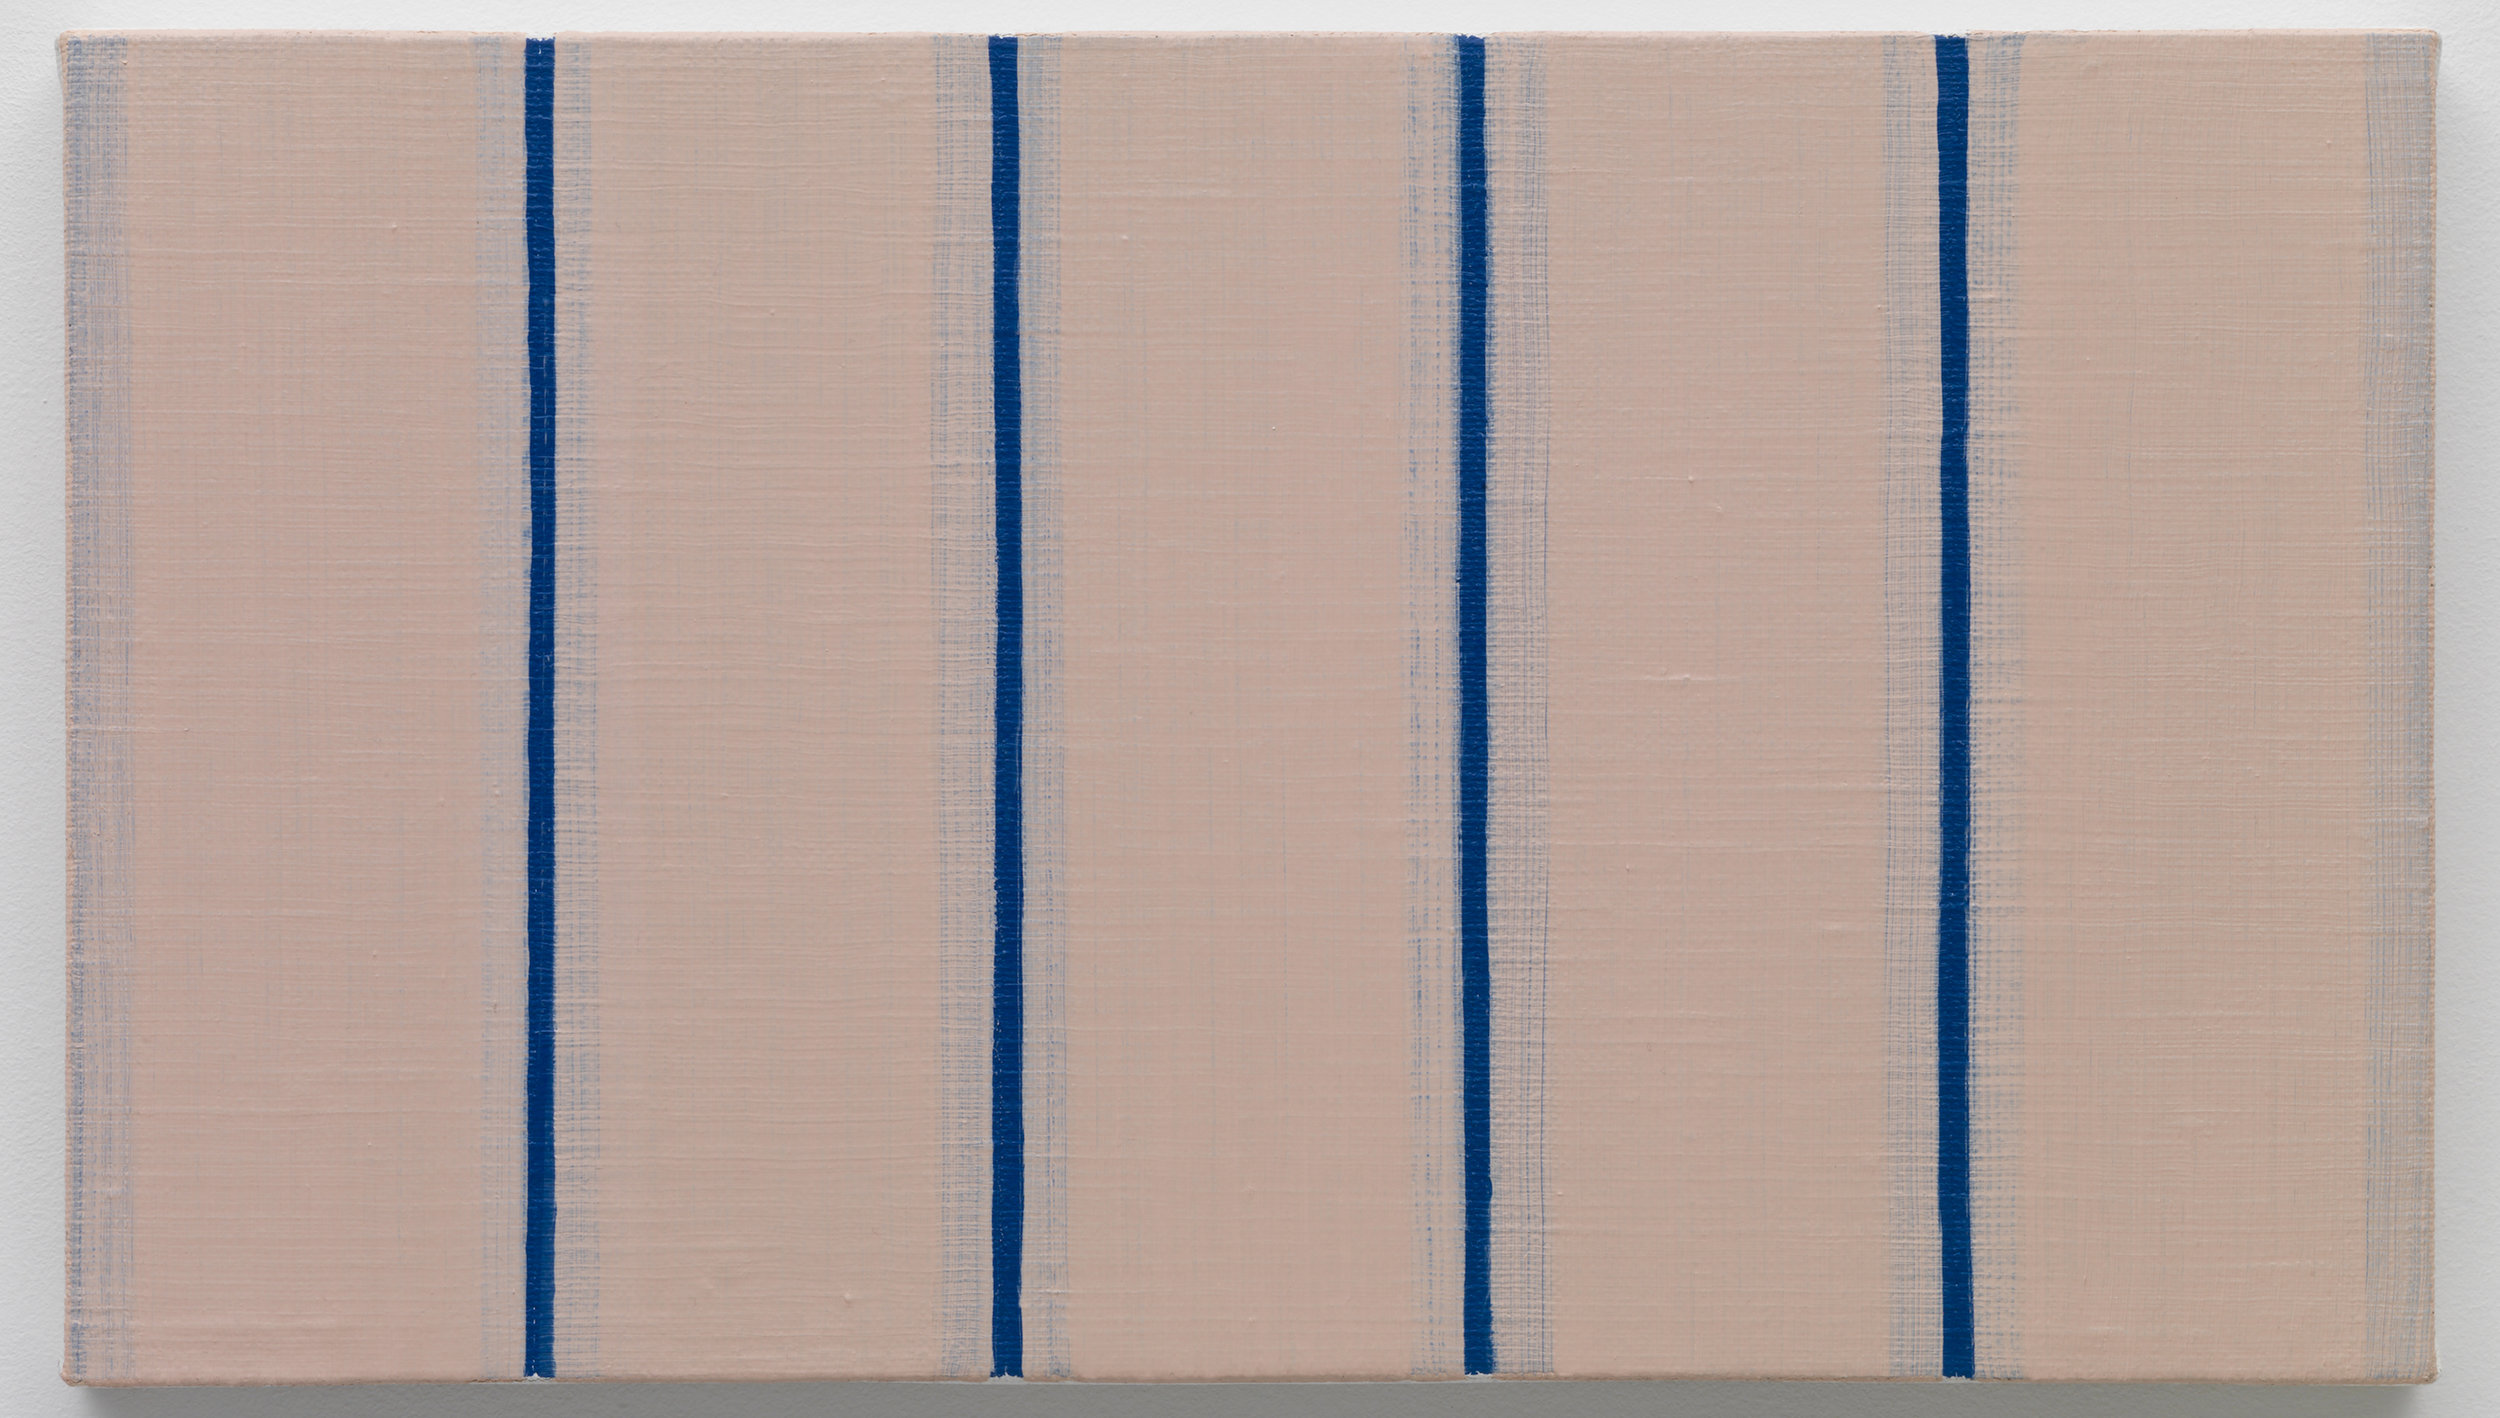 Yui Yaegashi's small scale painting with vertical pink stripes layered atop thin bright blue stripes showing from beneath